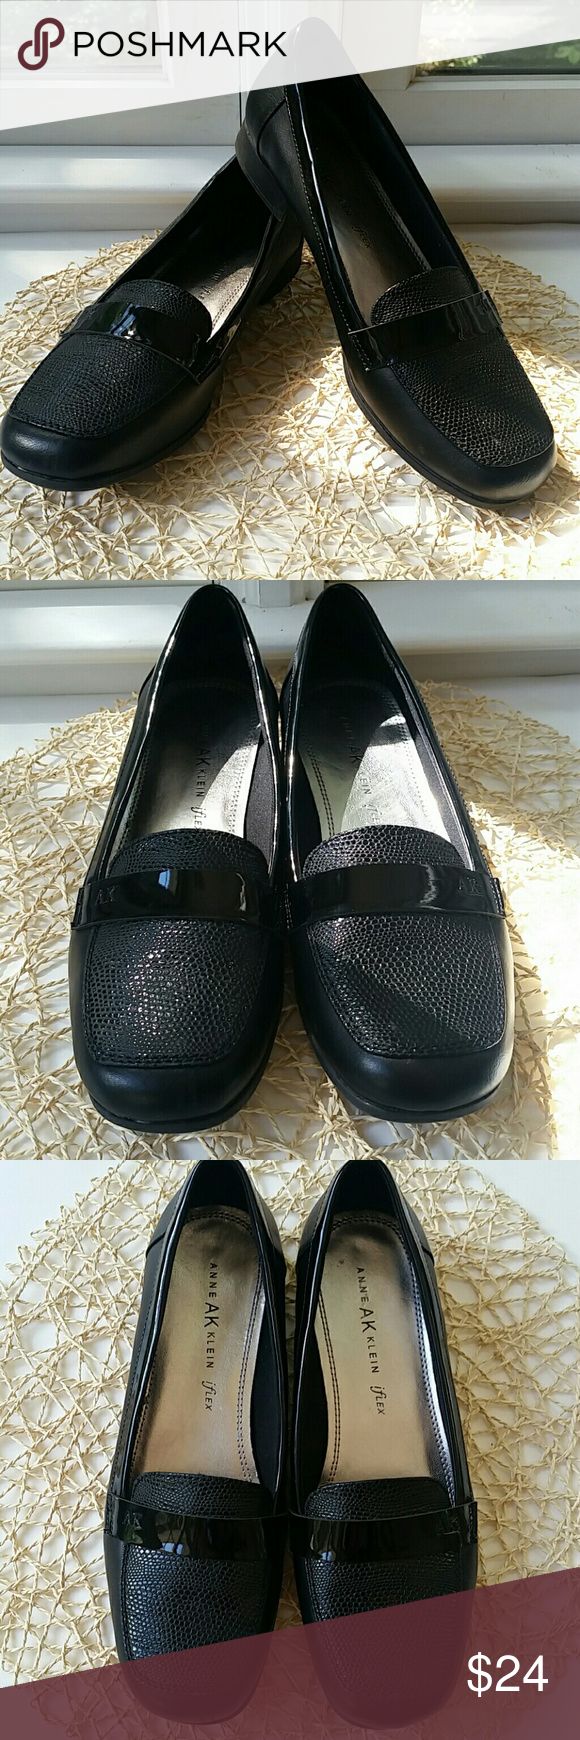 "🆕NWOT Anne Klein iFlex Black Loafer Career Shoes Anne Klein iFlex Black Career Shoes. Crocodile appearance top. Patent leather accents. Squared off toes for maximum toe comfort. Anne Klein quality with iFlex comfort. 1"" Heel Height. Man made materials. Excellent NWOT condition, no issues. Thank you for looking! Xoxoxoxo Anne Klein Shoes Flats & Loafers"